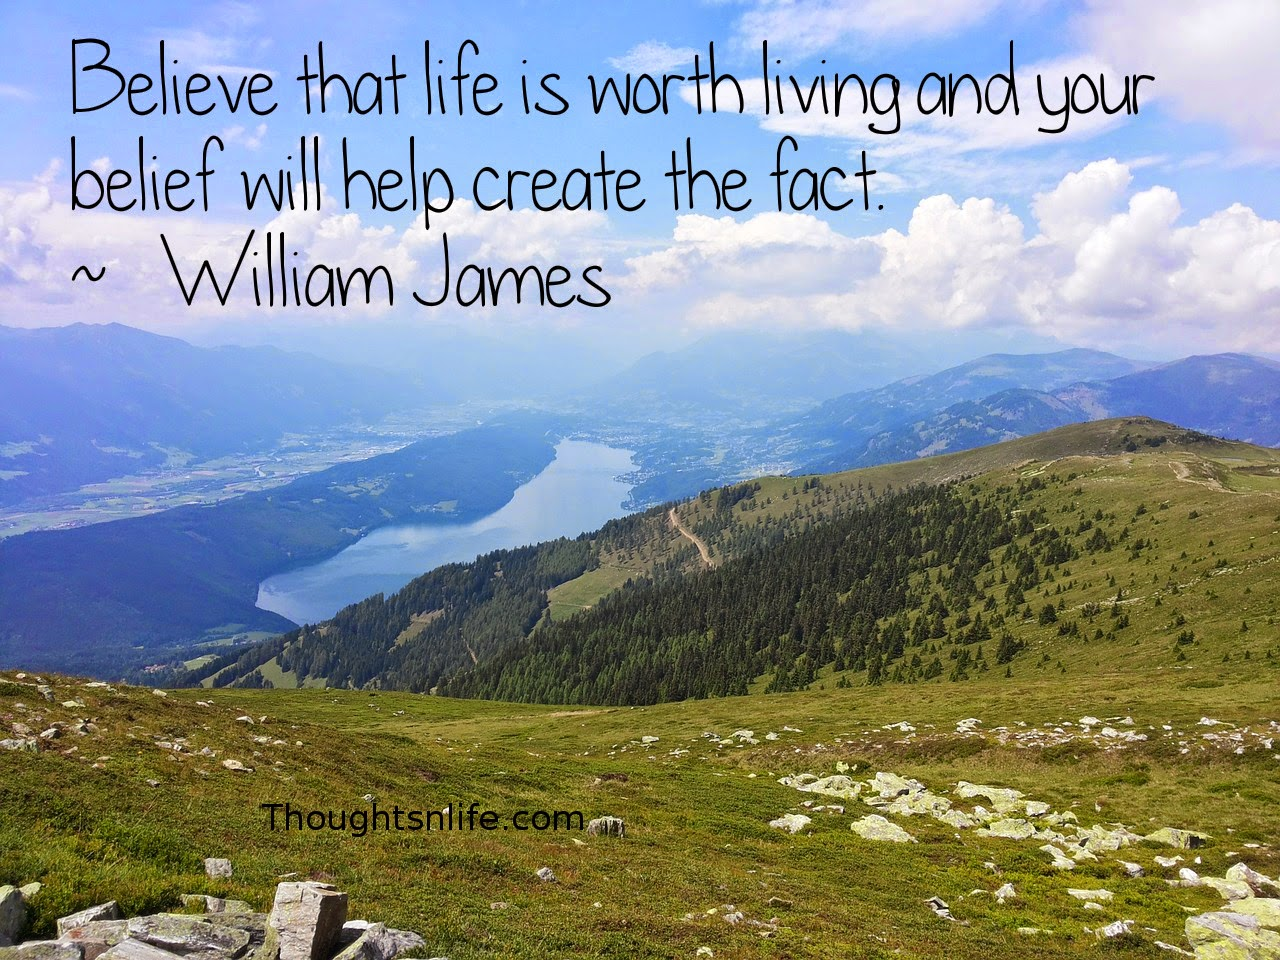 Thoughtsnlife.com: Believe that life is worth living and your belief will help create the fact. ~   William James